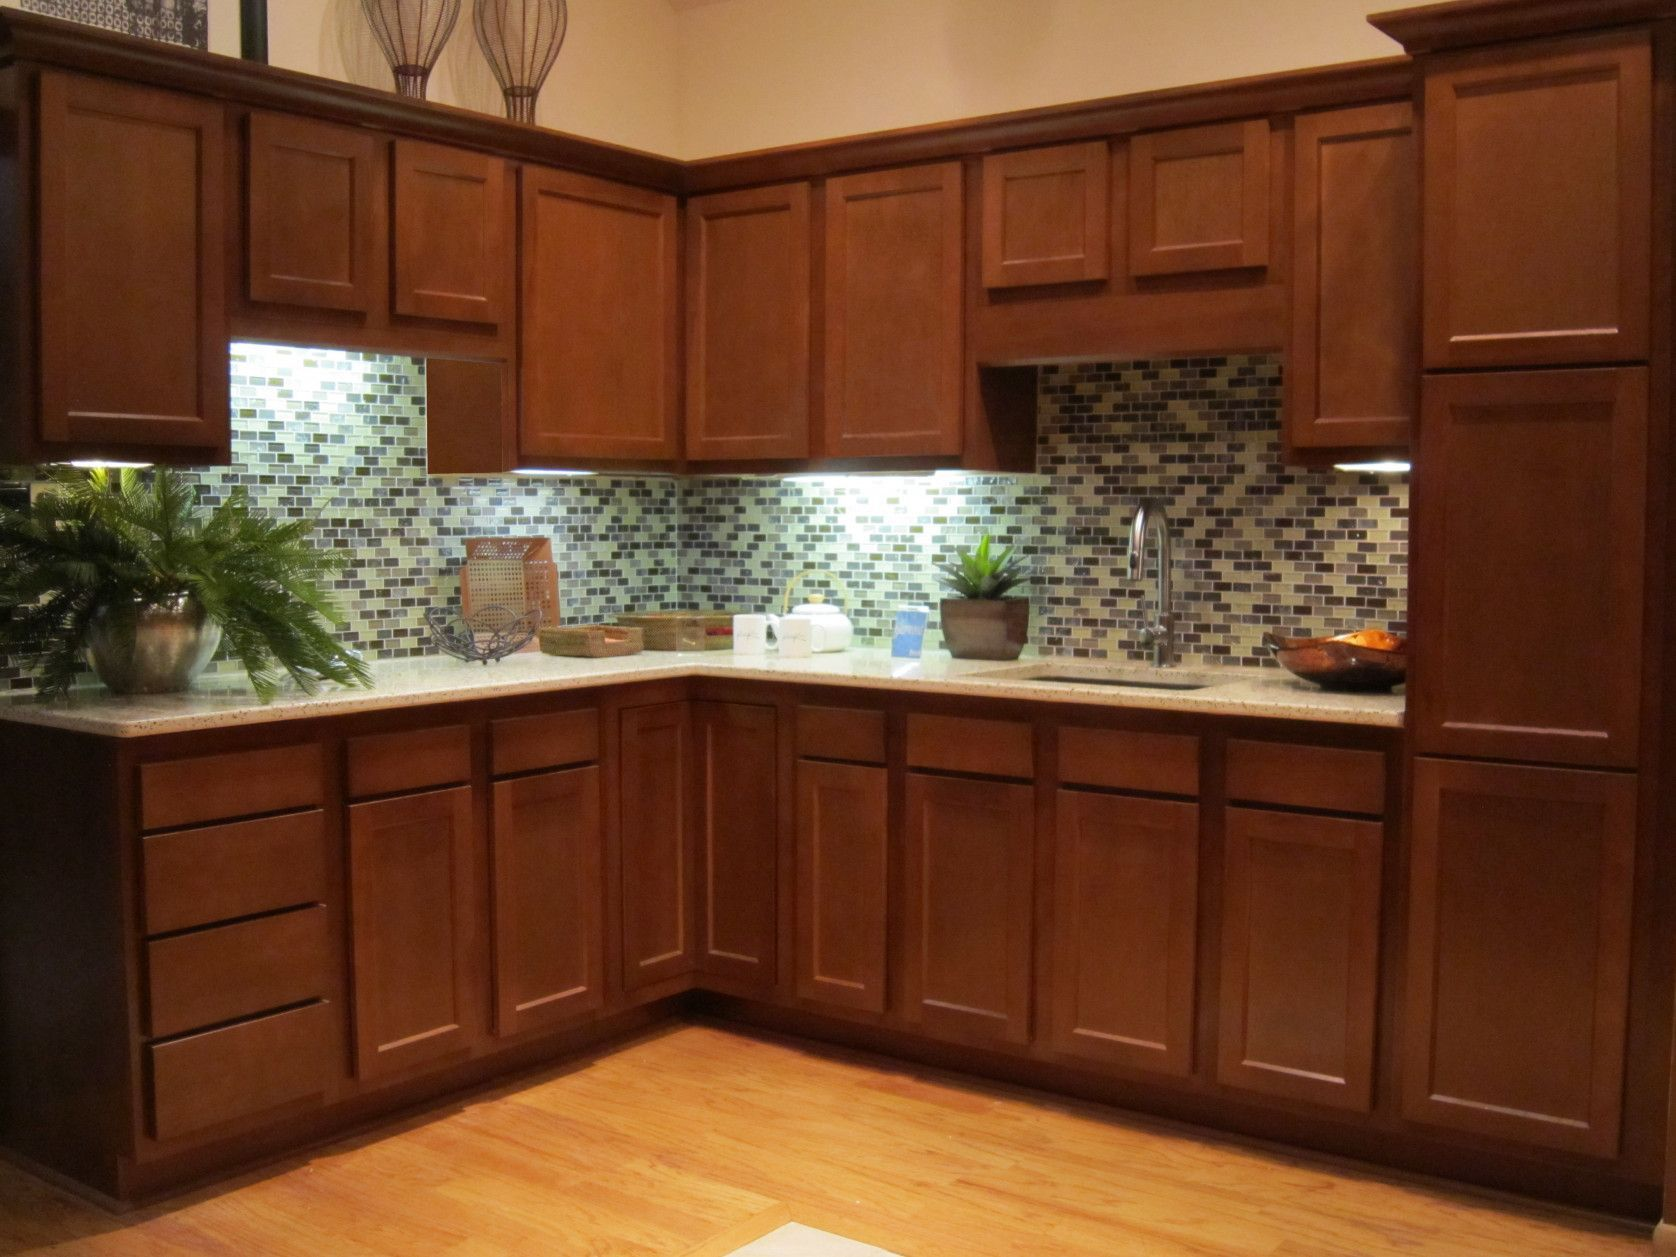 Glenwood Kitchen Cupboard Opinions Beech Kitchen Cabinets Kitchen Cabinets Beech Kitchen